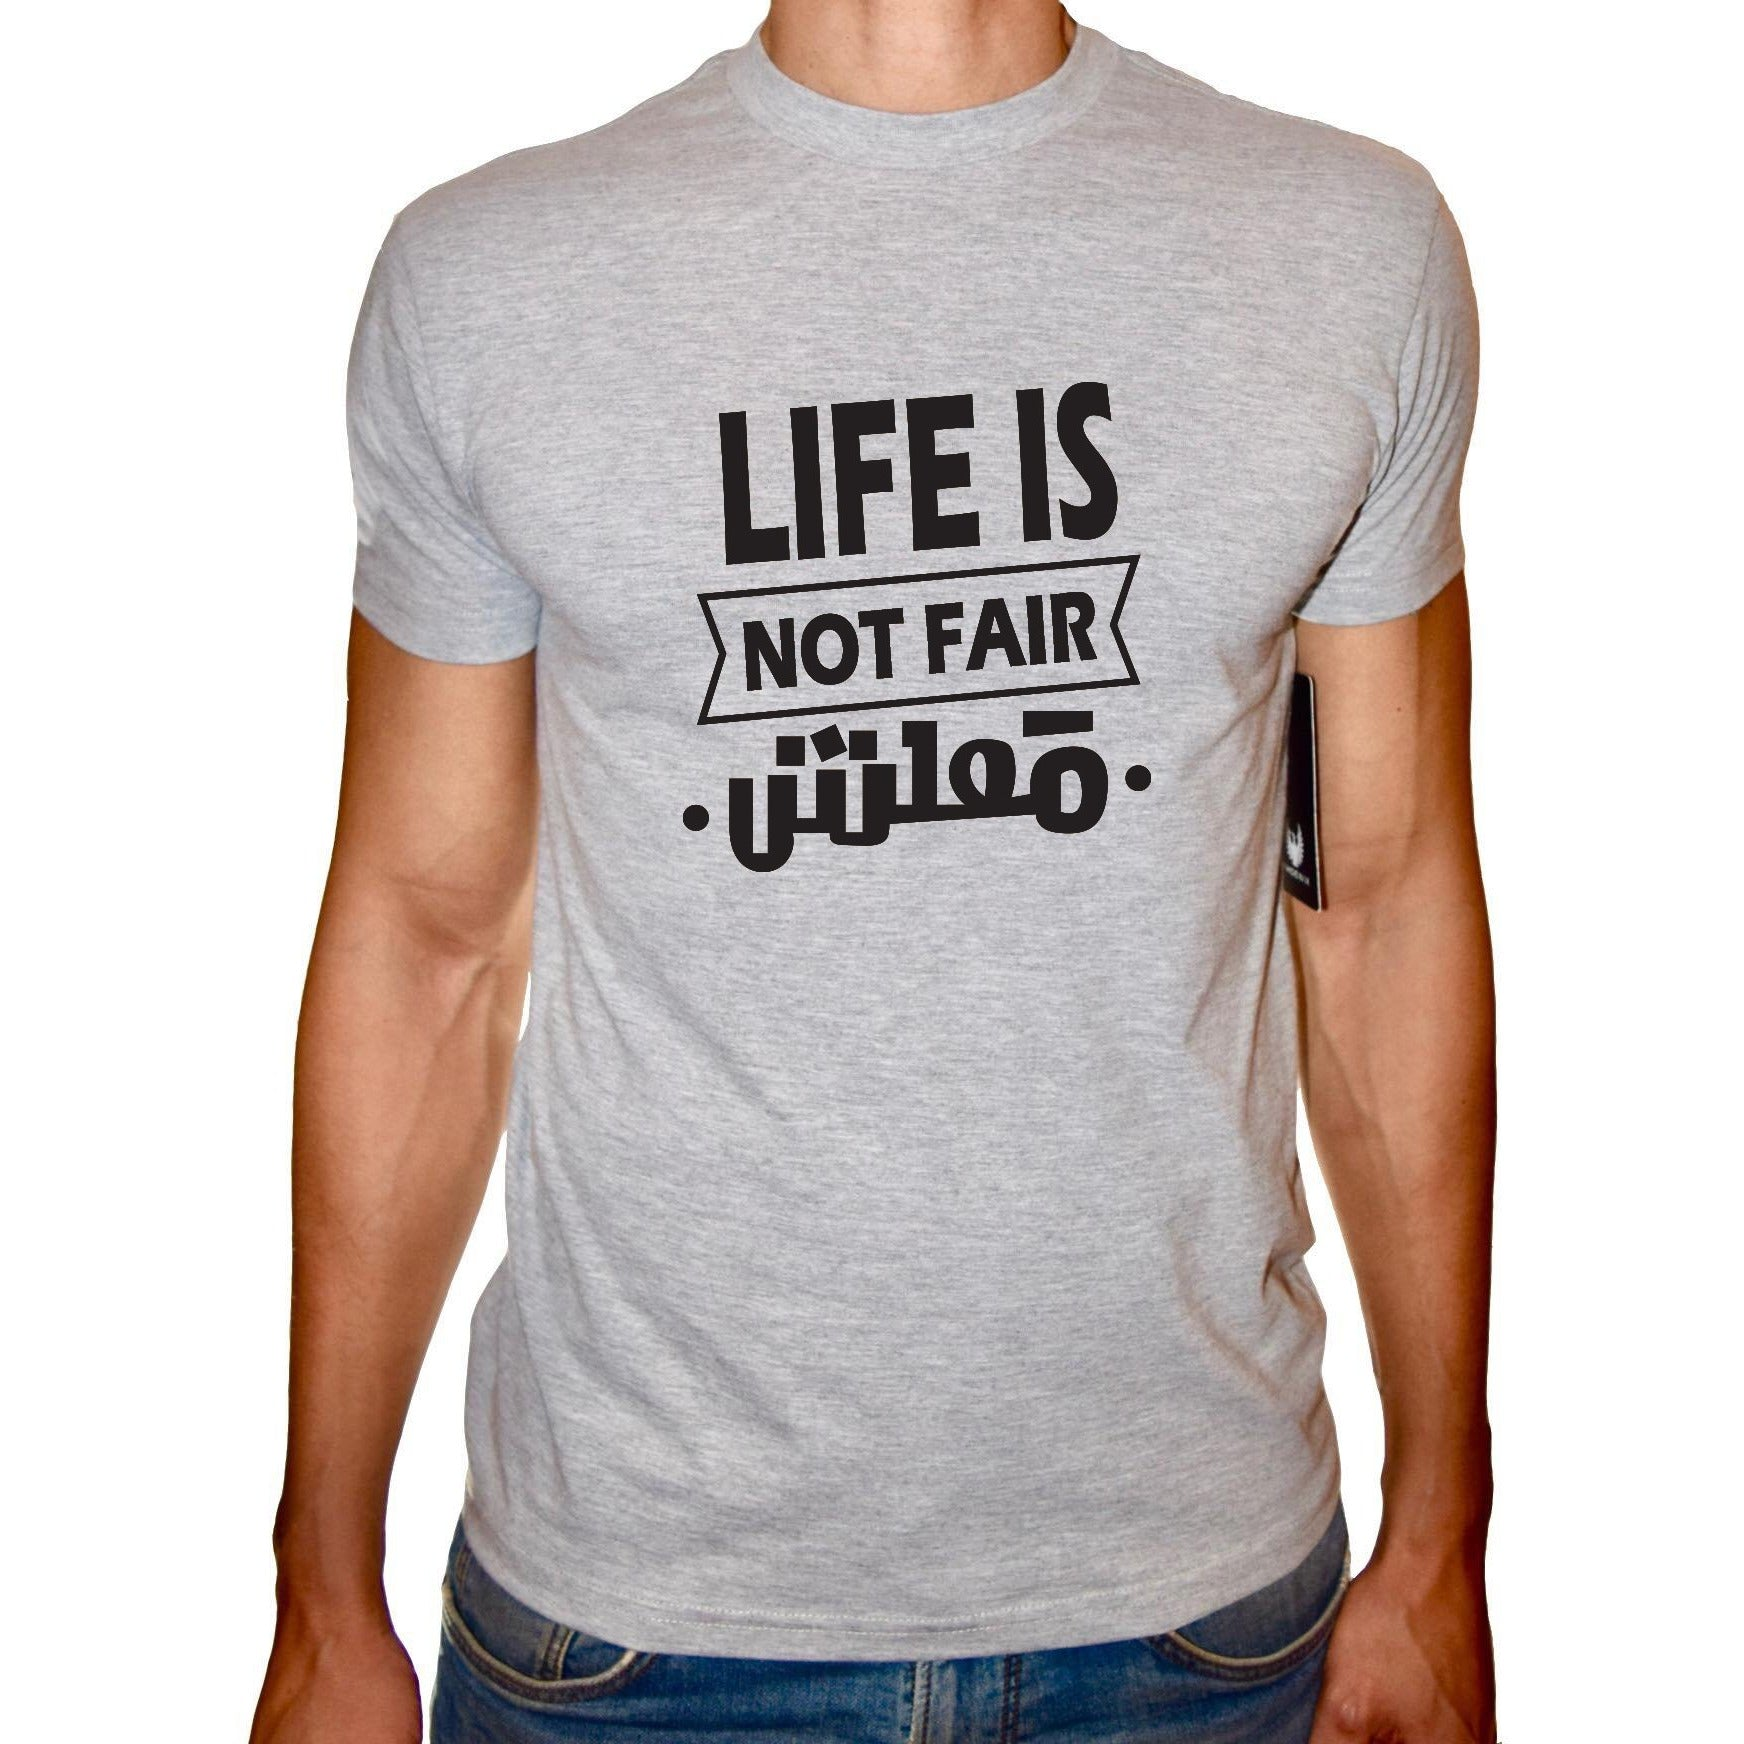 Phoenix GREY Round Neck Printed T-Shirt Men(life is not fair)